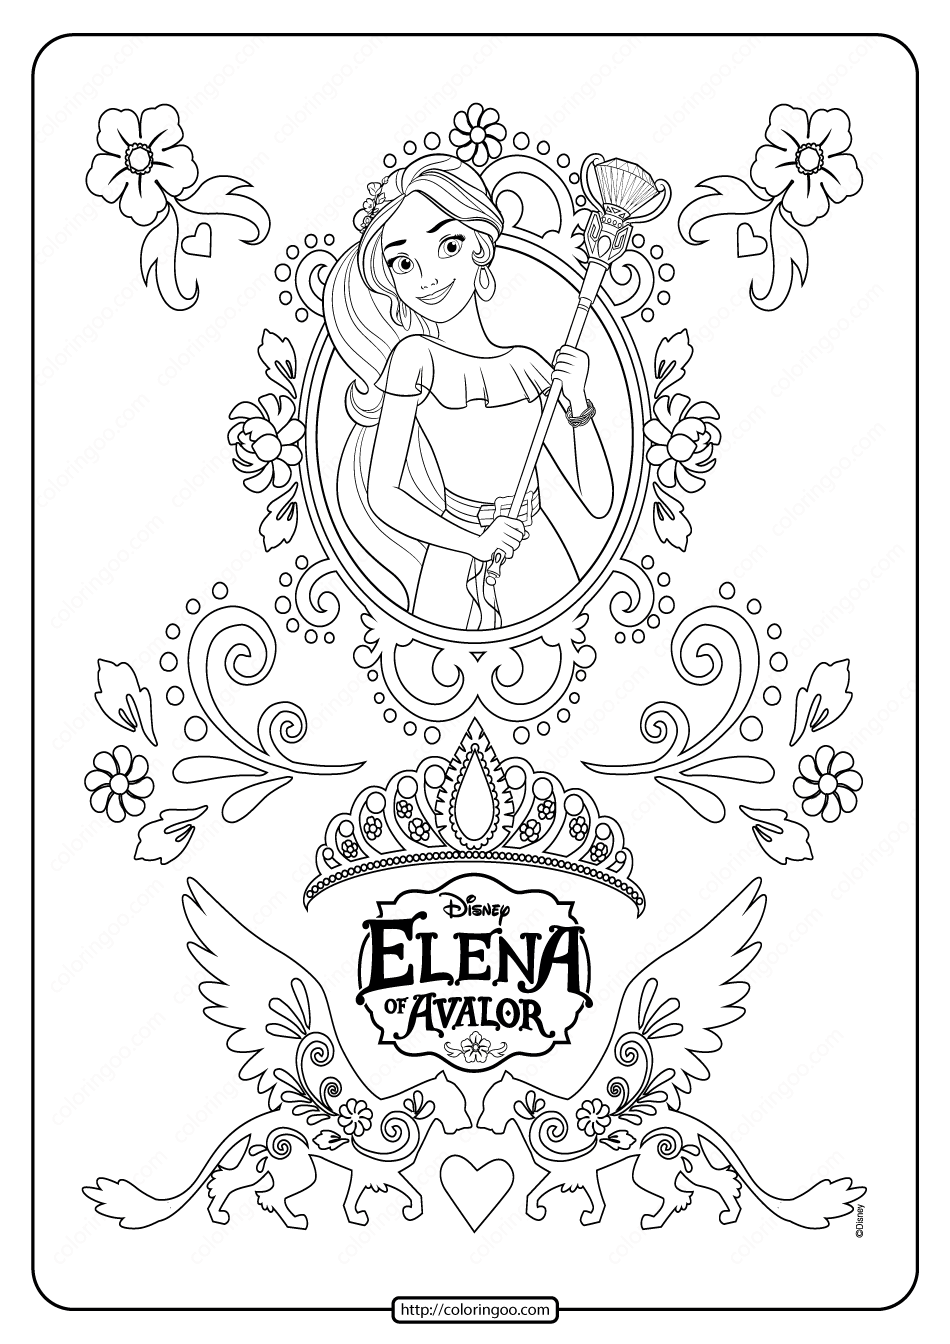 Disney Princess Elena of Avalor Coloring Sheet